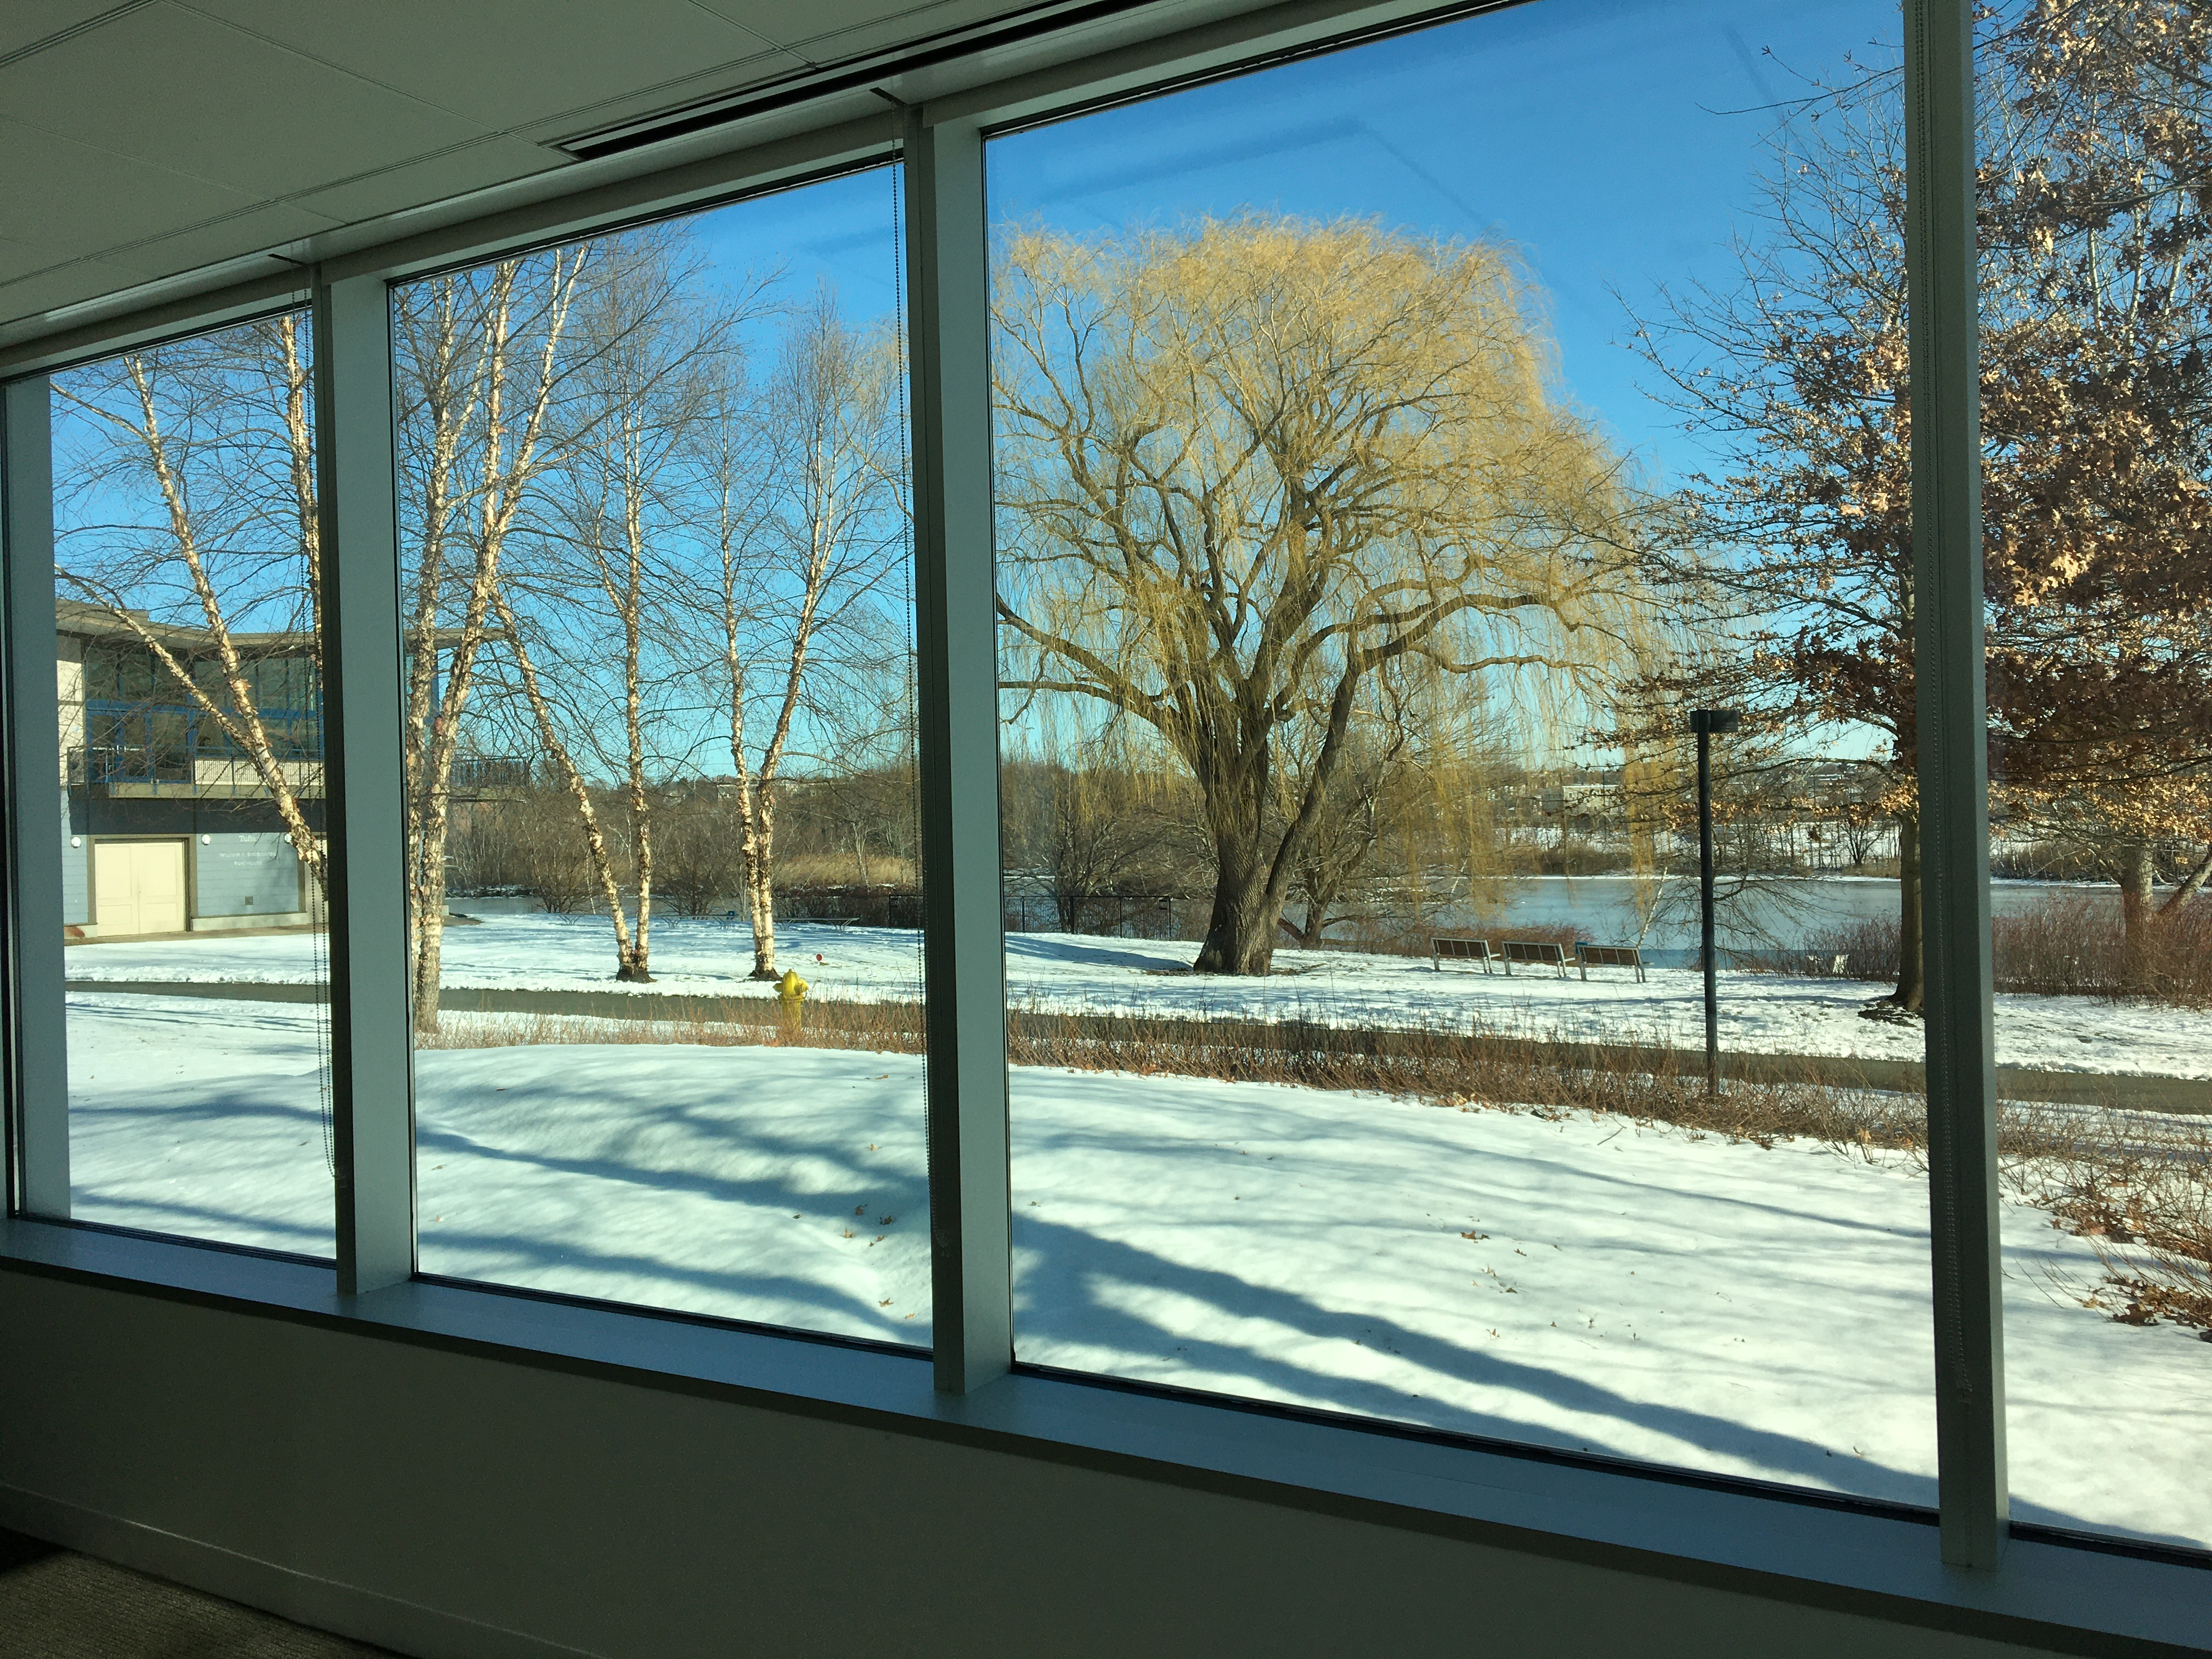 Great Lawn Room View in Winter